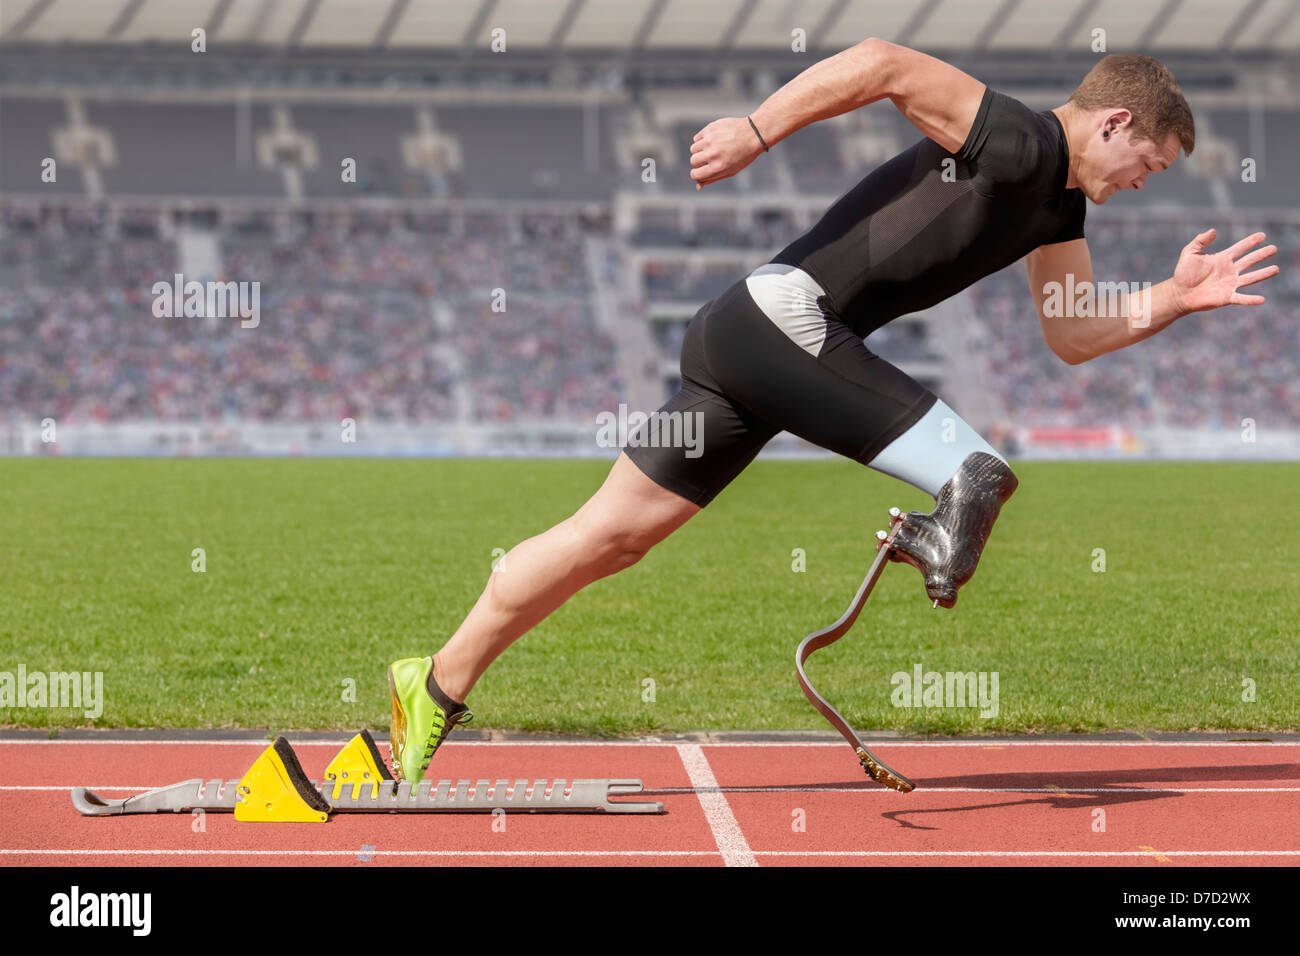 Explosive start of athlete with handicap - Stock Image